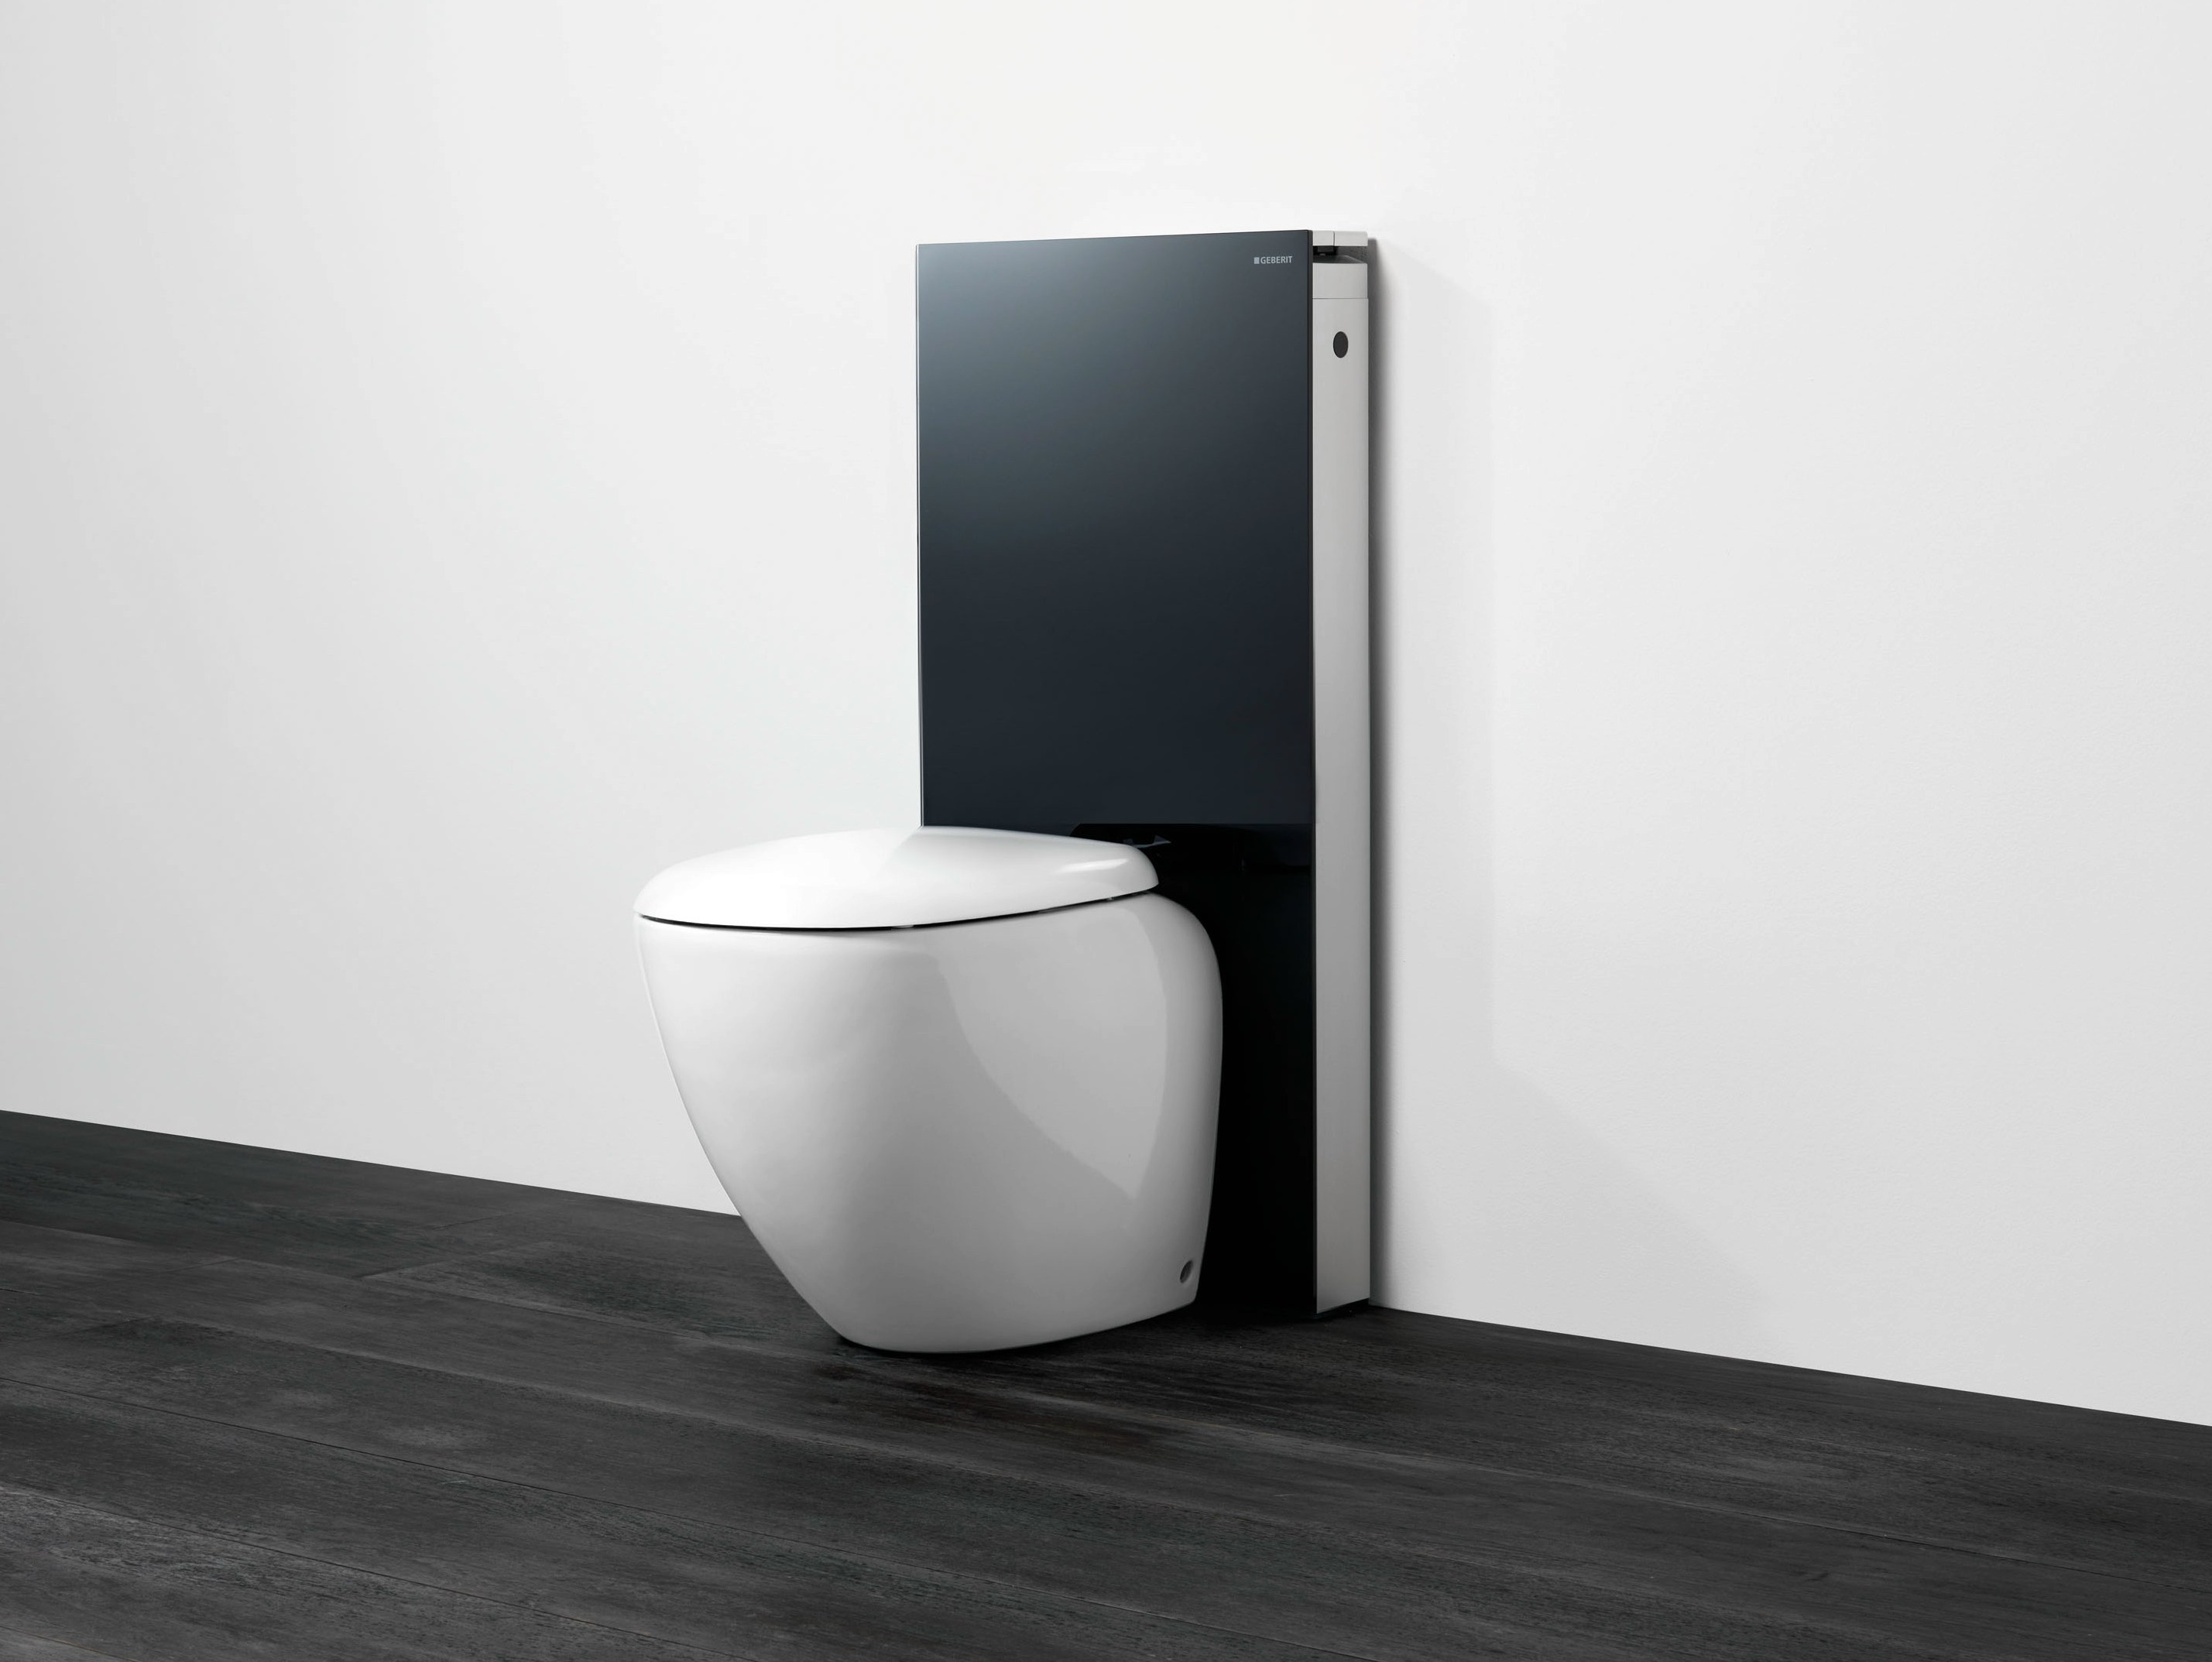 tempered glass sanitary module for toilets monolith by. Black Bedroom Furniture Sets. Home Design Ideas